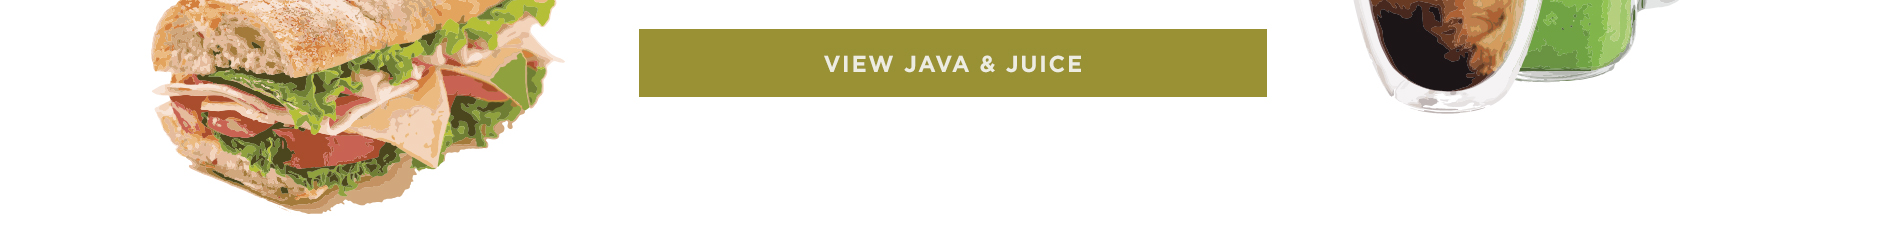 View Java & Juice